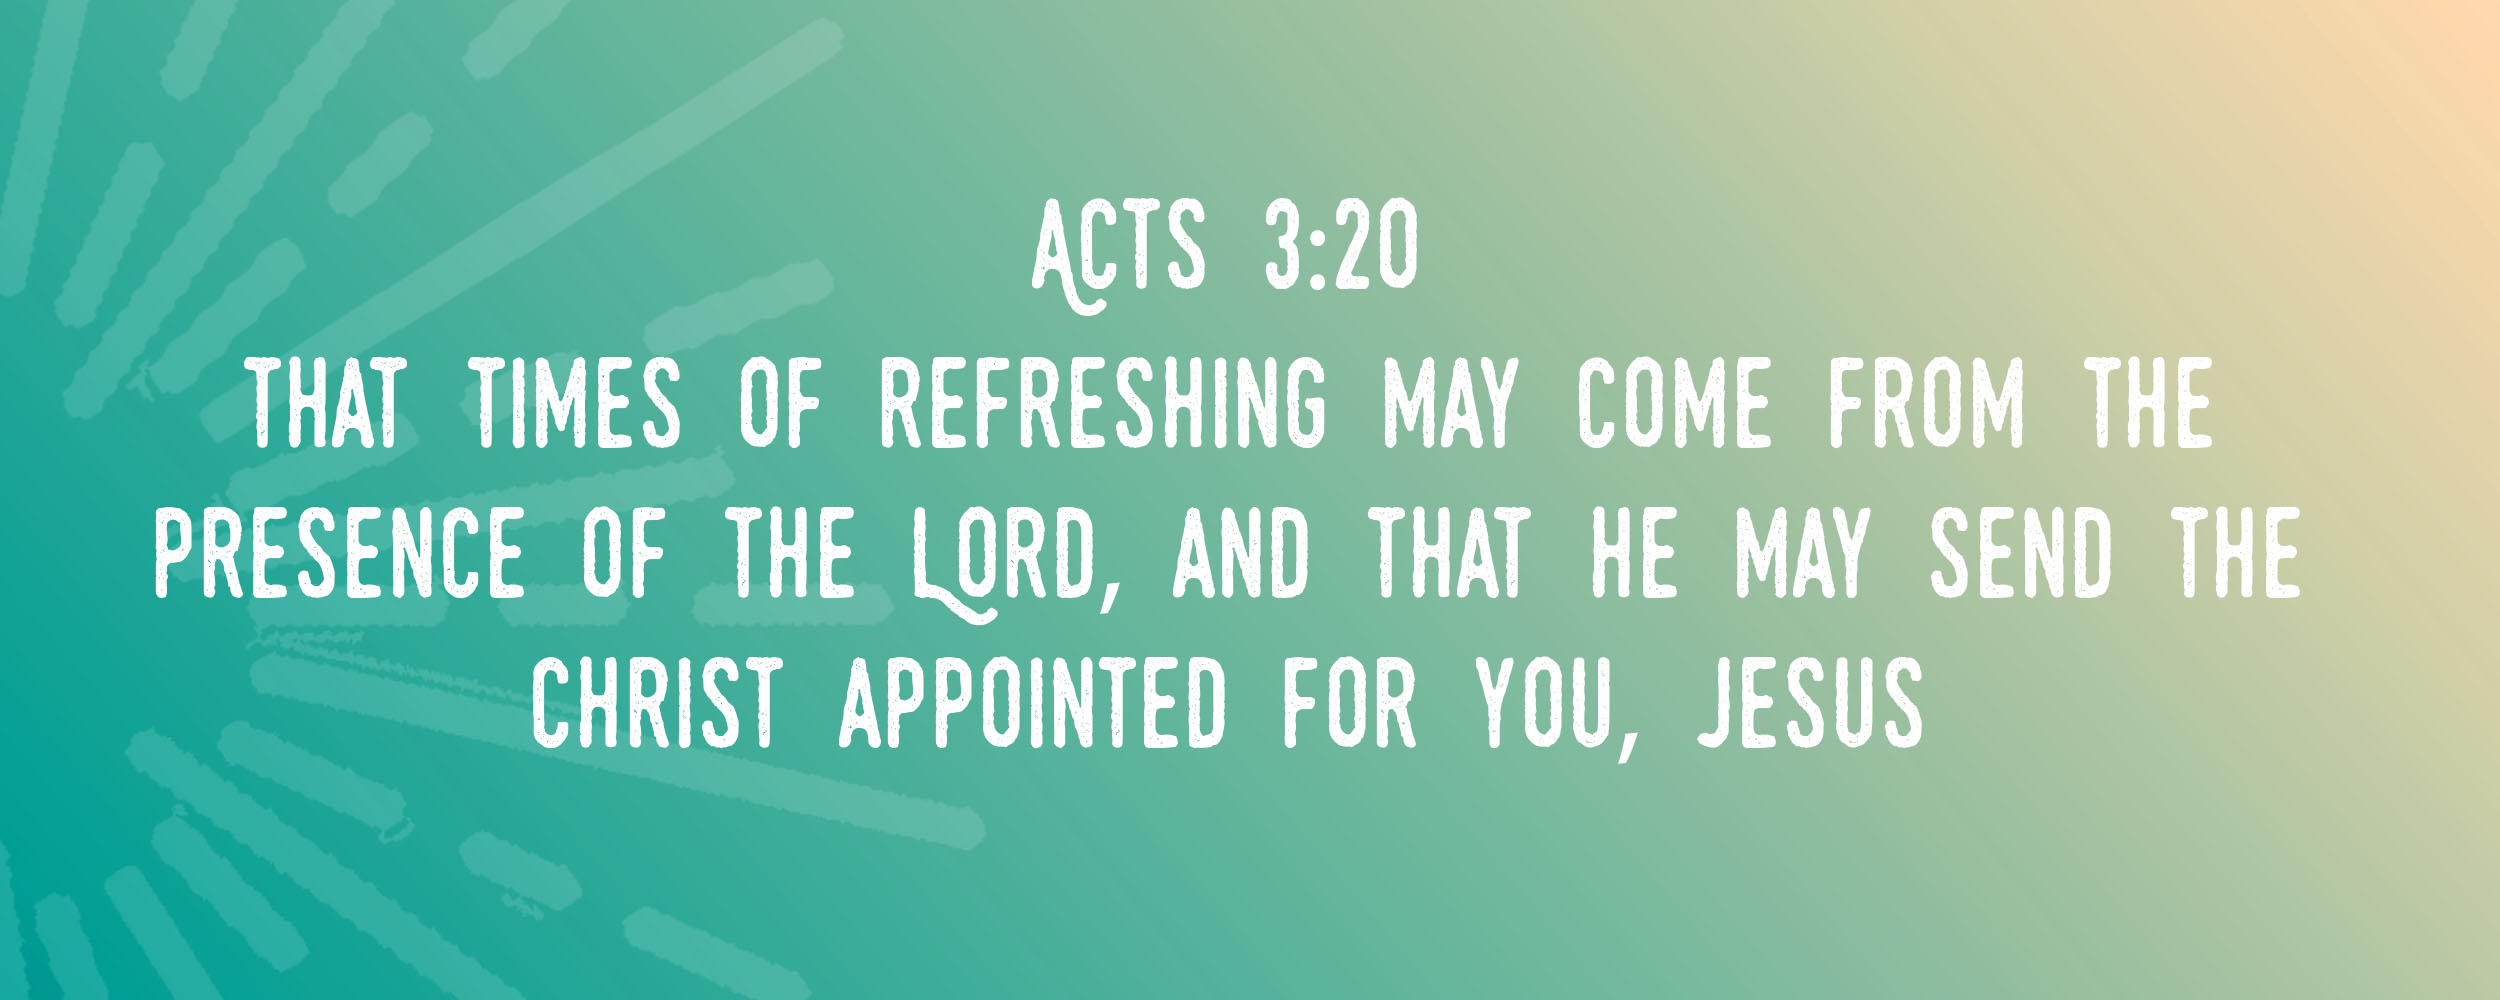 acts3-20